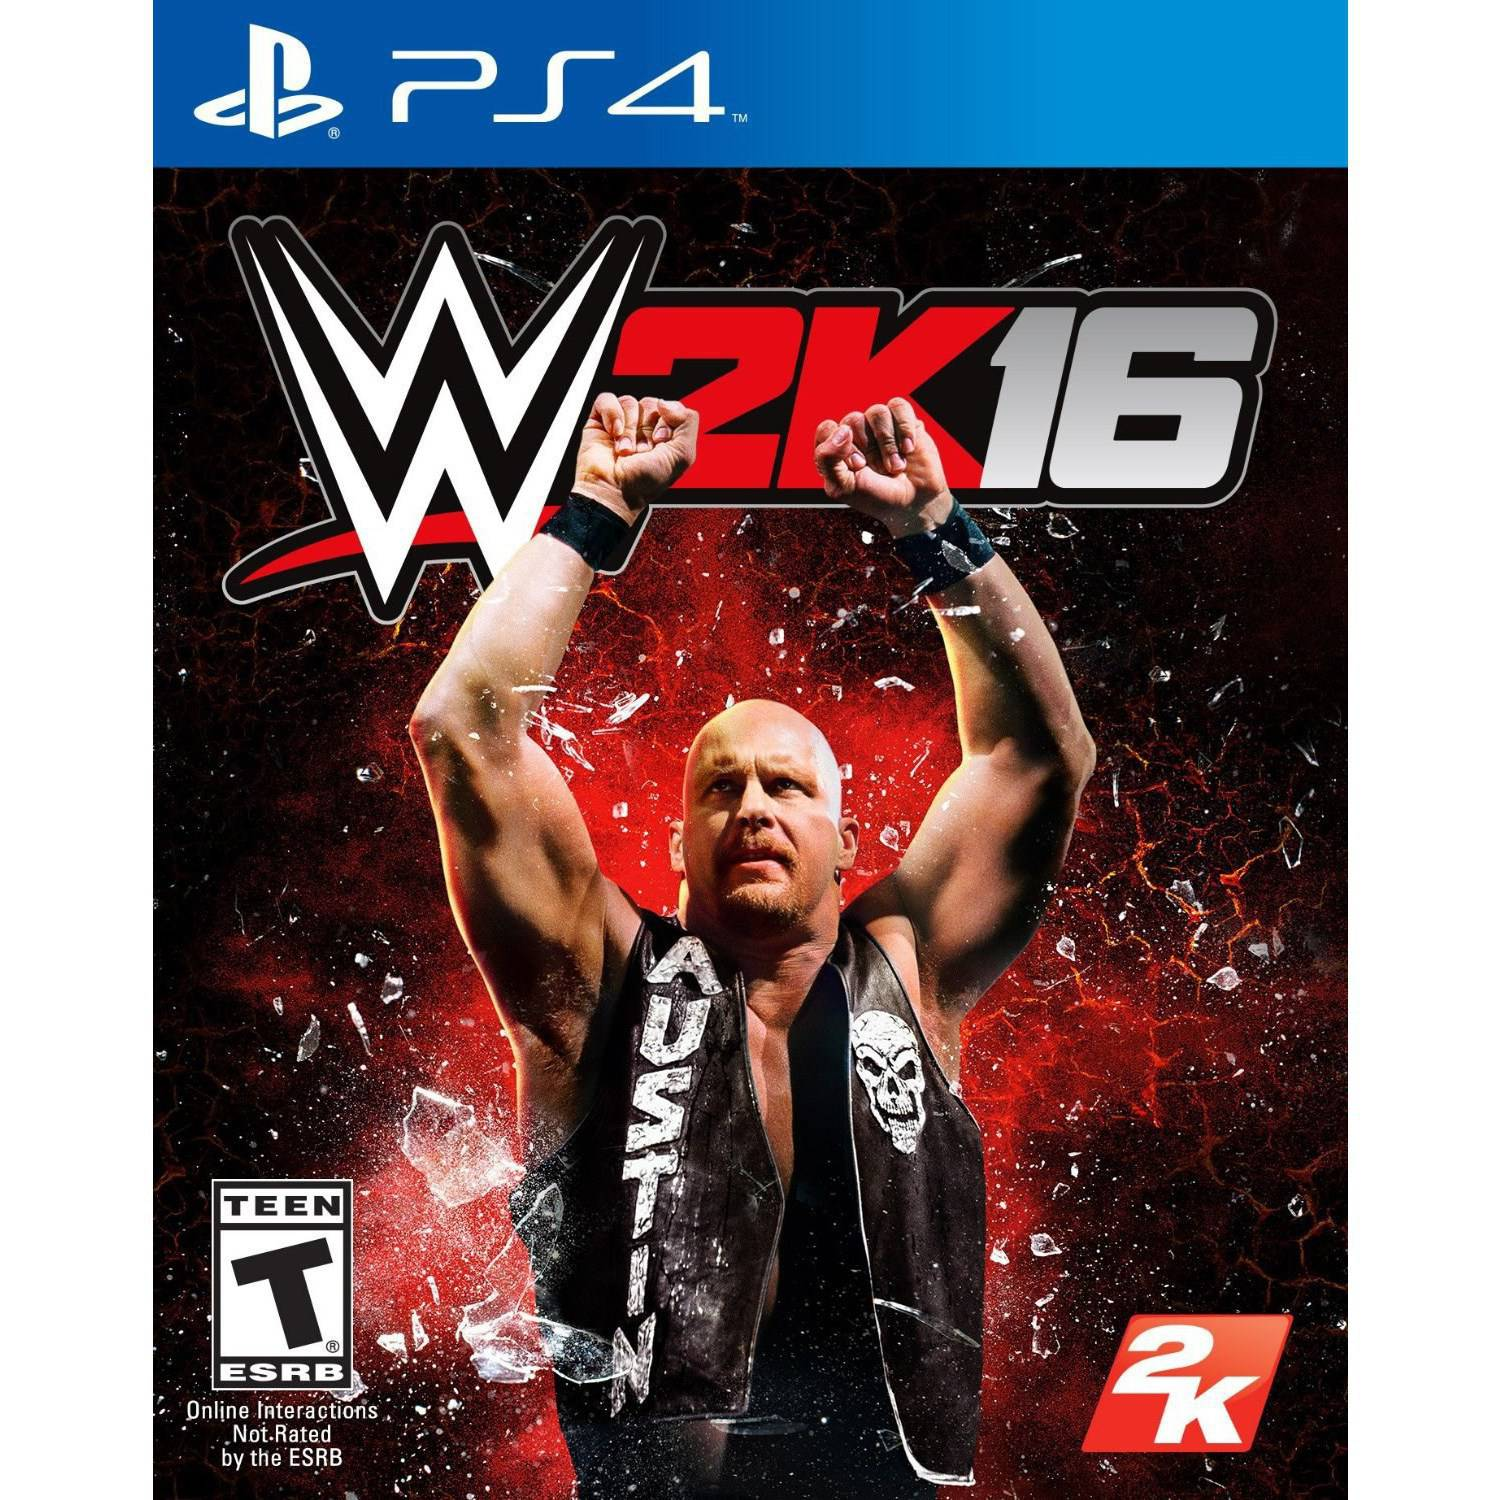 WWE 2K16 (PS4) - Pre-Owned